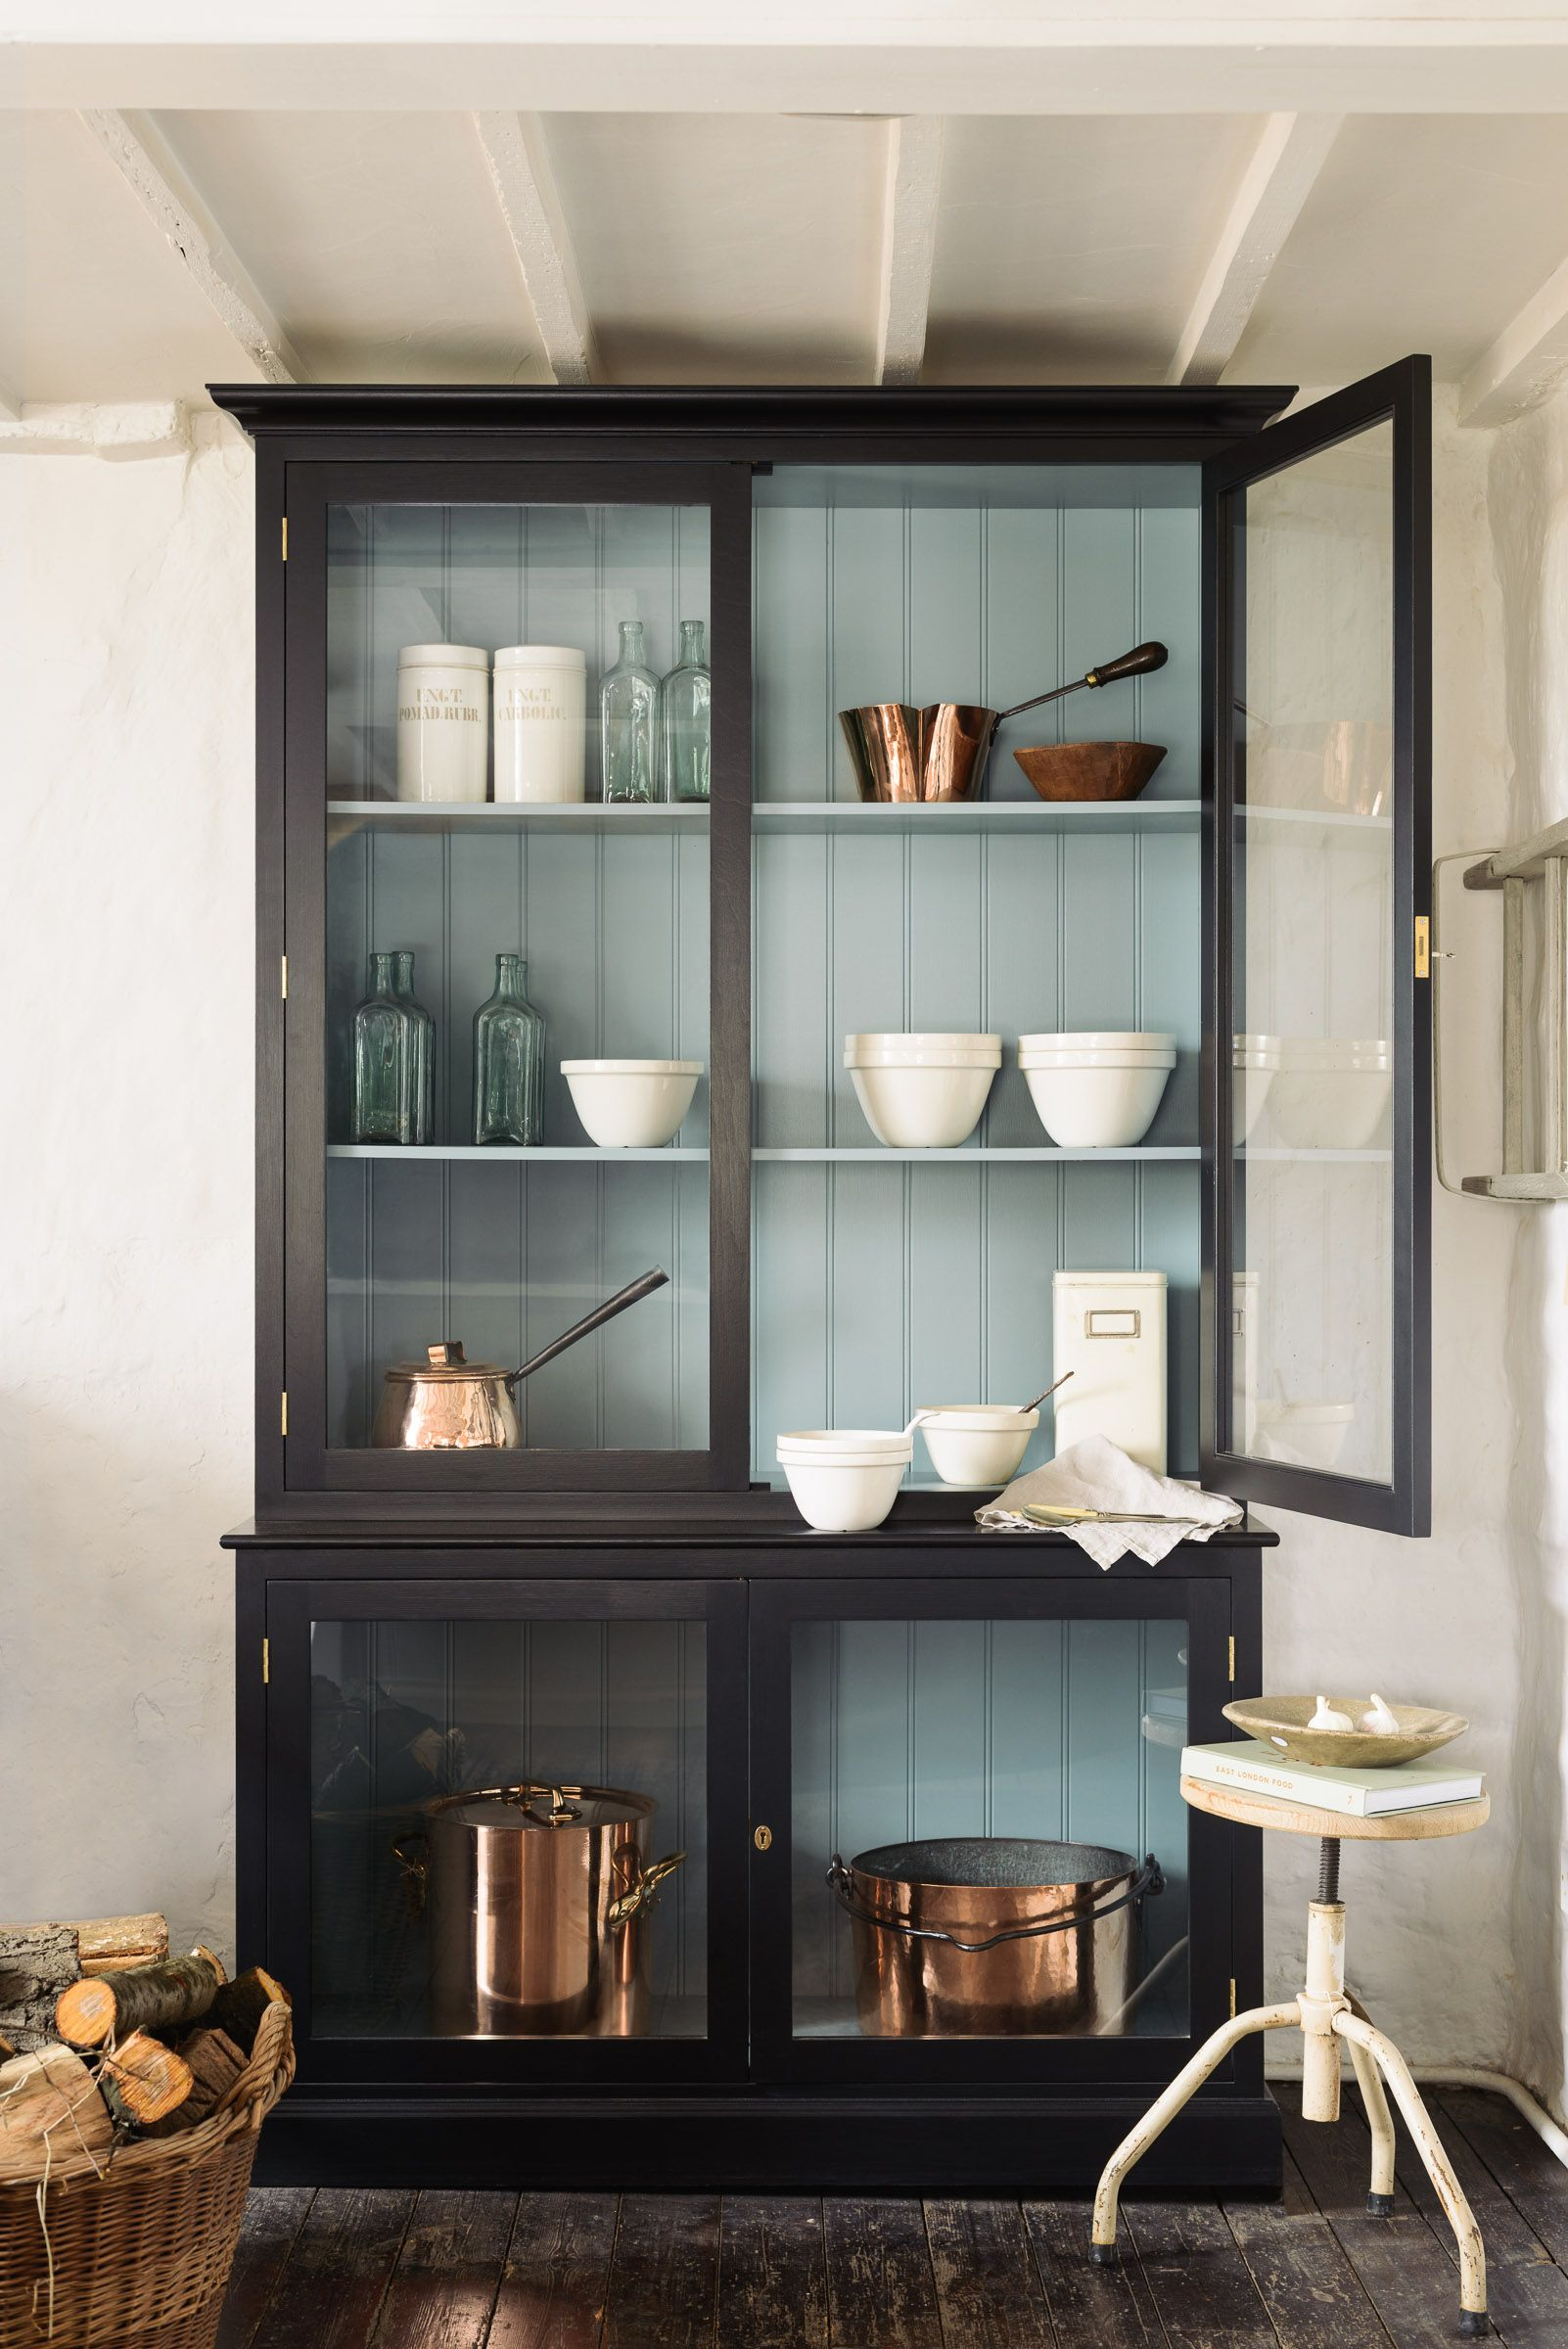 The beautiful new Curiosity Cupboard by deVOL filled with copper